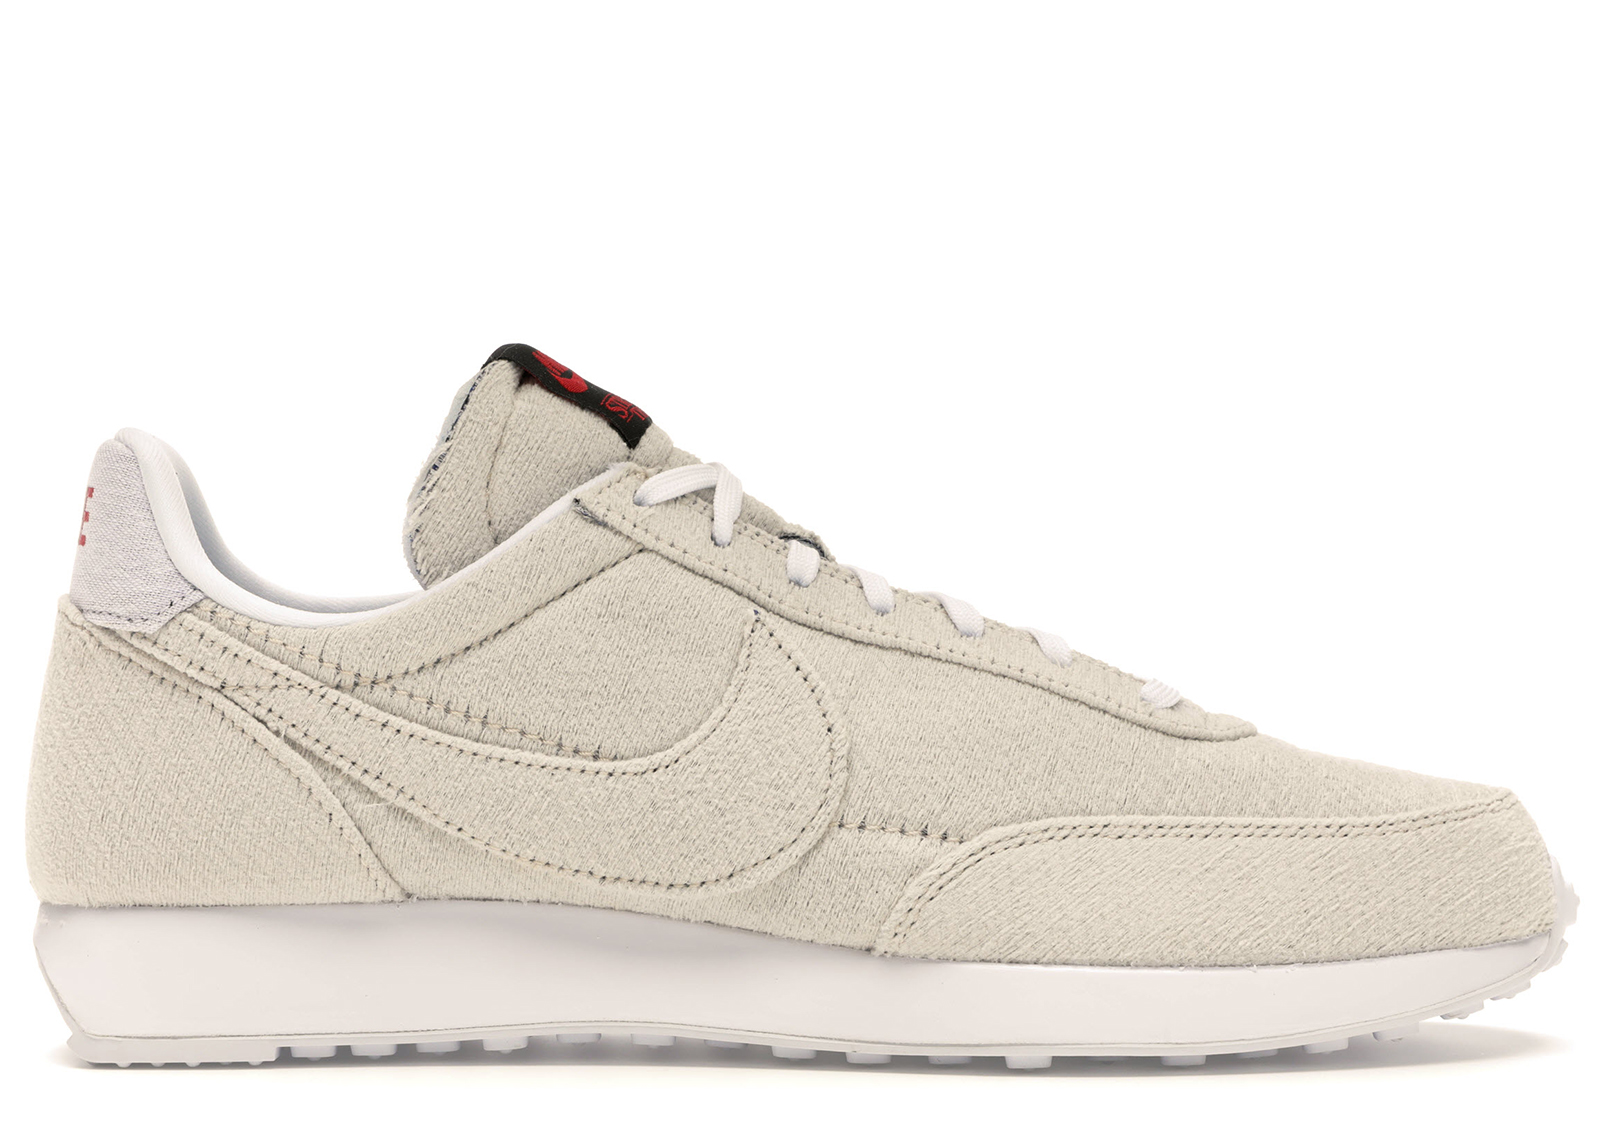 Nike Air Tailwind 79 QS x Stranger Things Upside Down sail